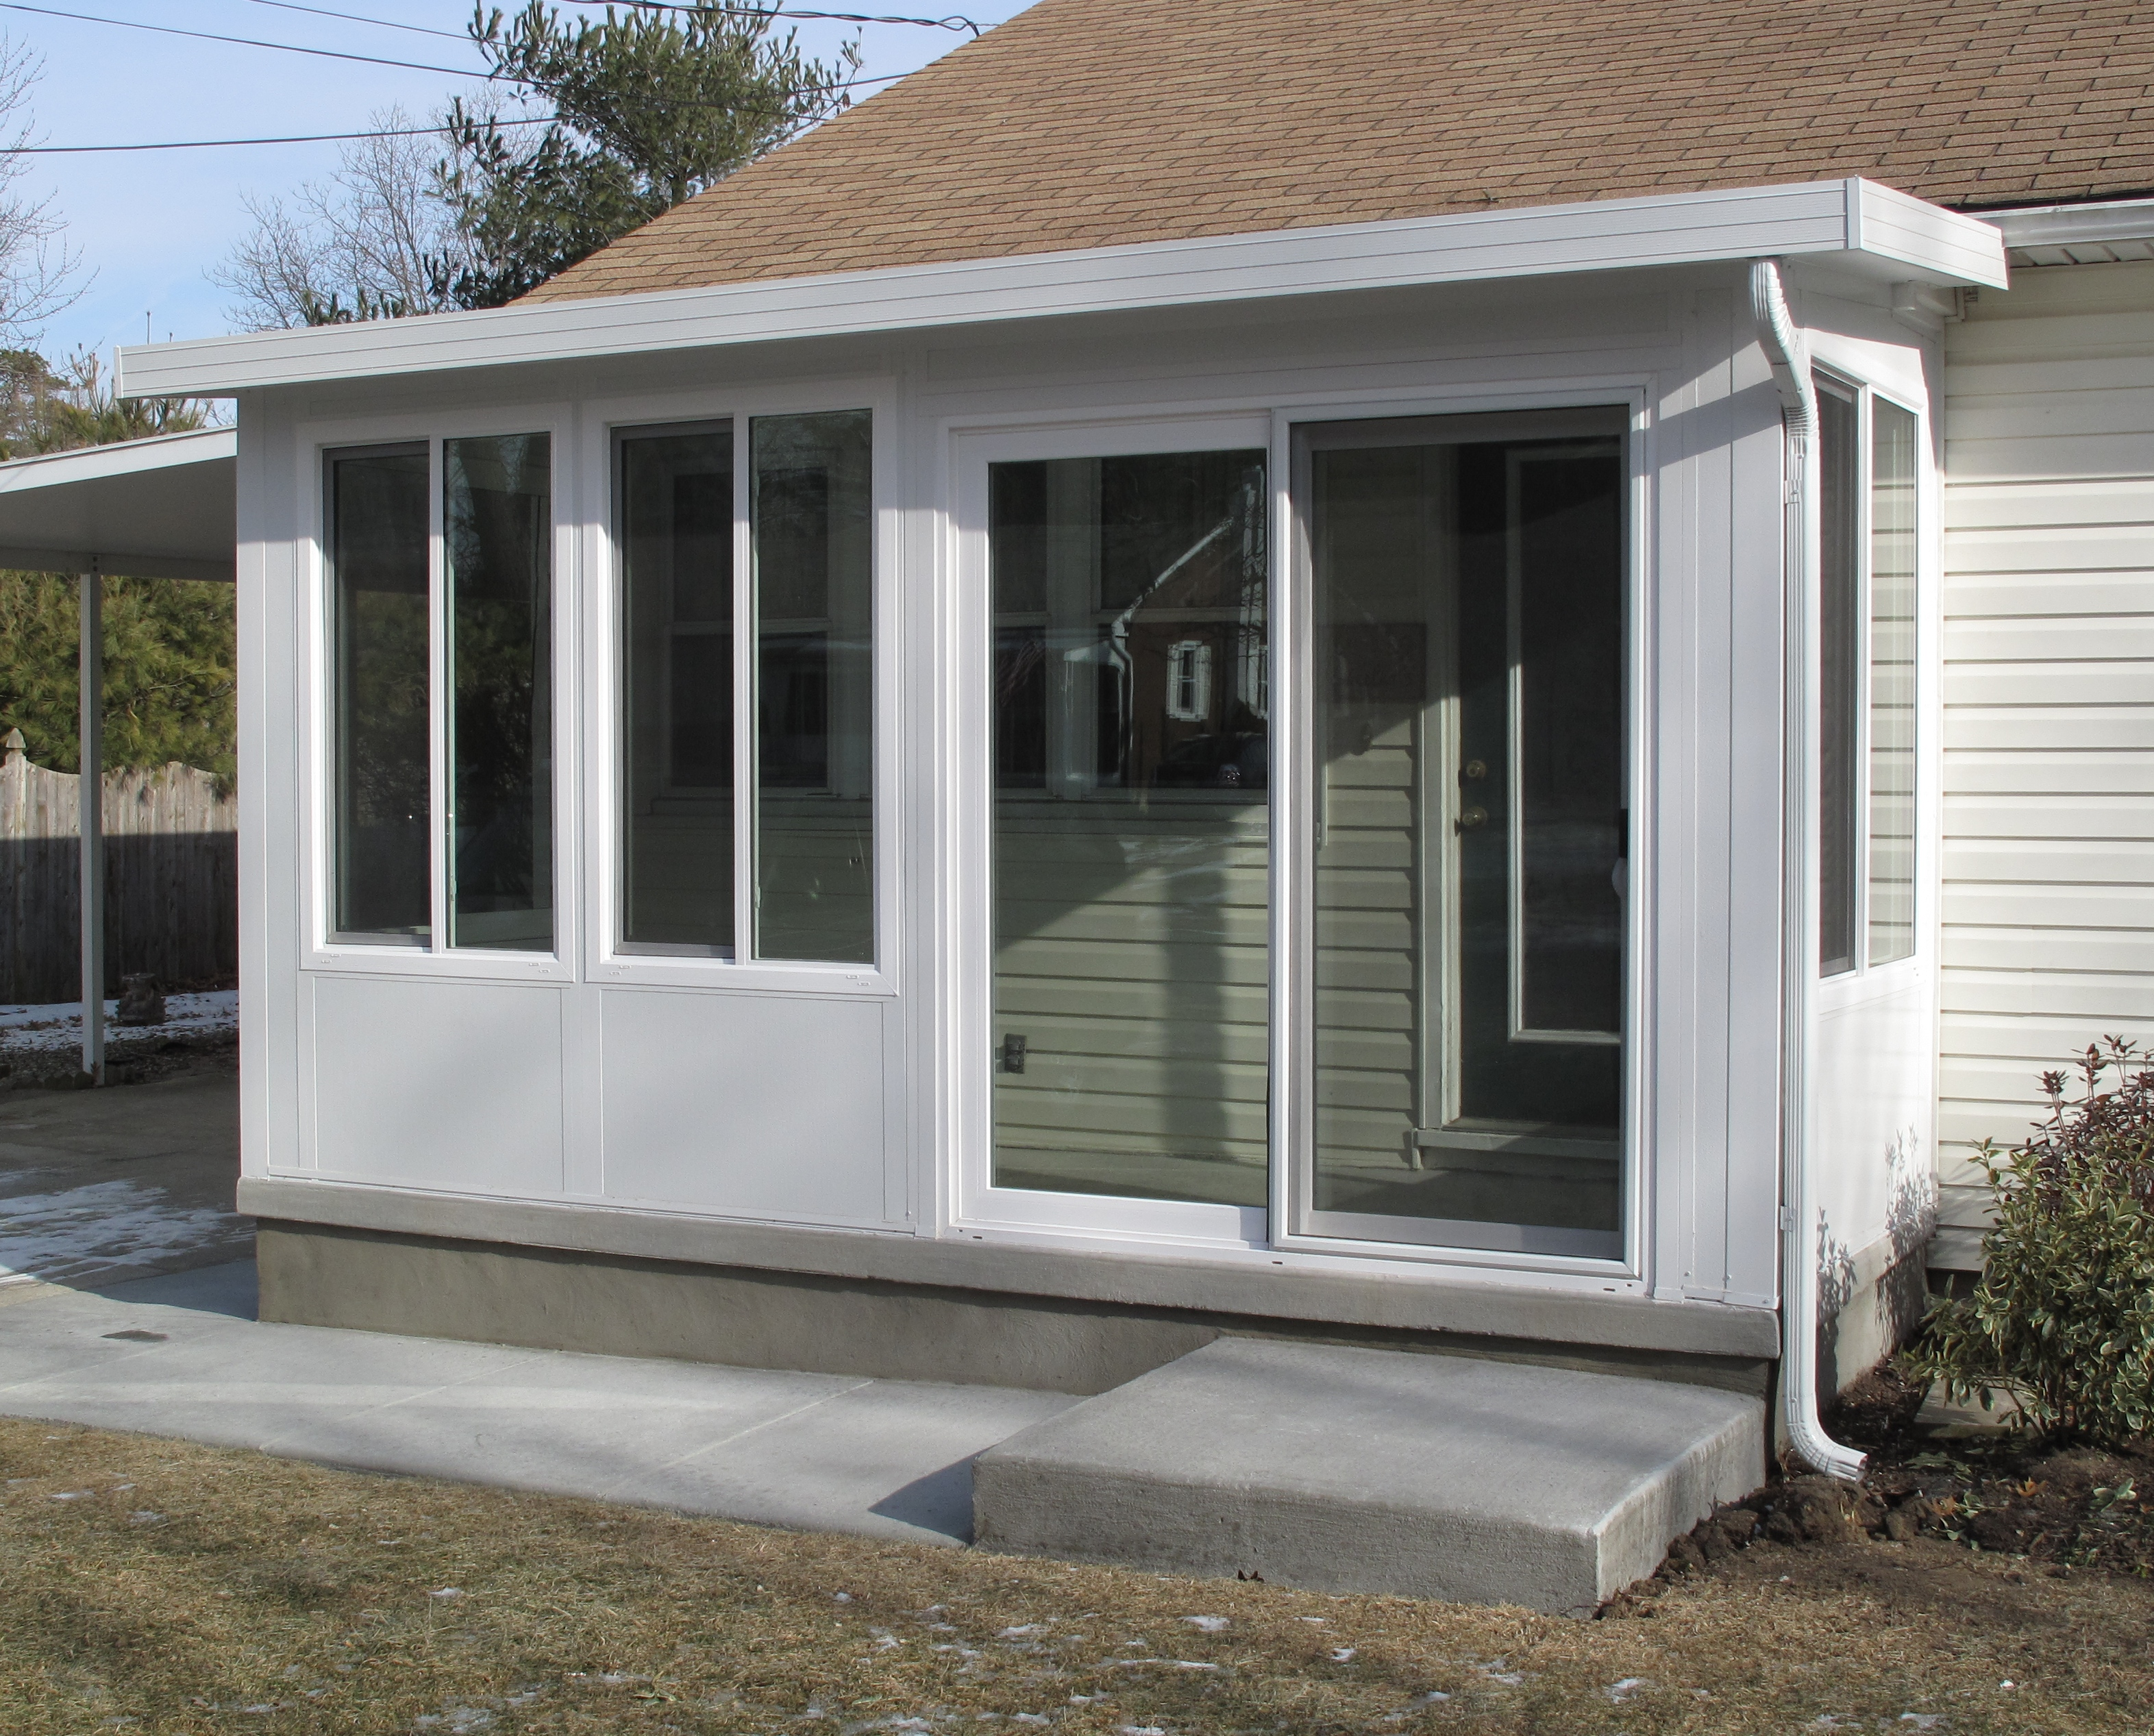 Patio rooms sunrooms enclosures cape may nj photo for Porch sunroom